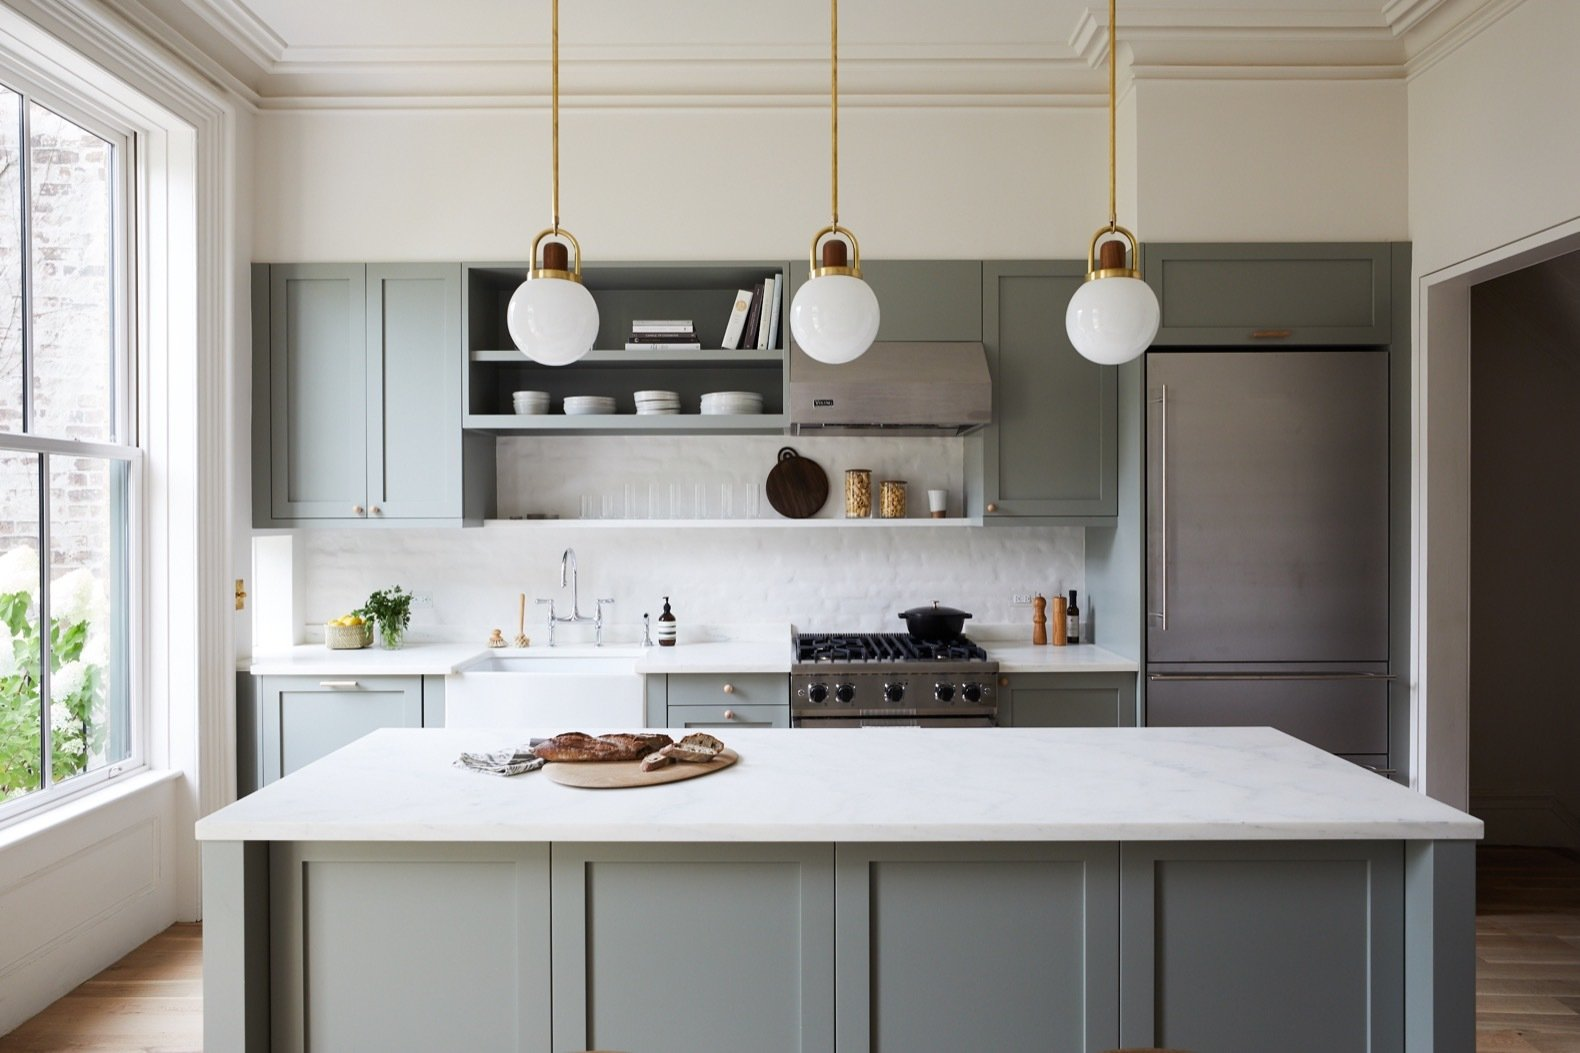 Crystal Kitchen Island Lighting Before & After: A 19th-century Brooklyn Brownstone Is